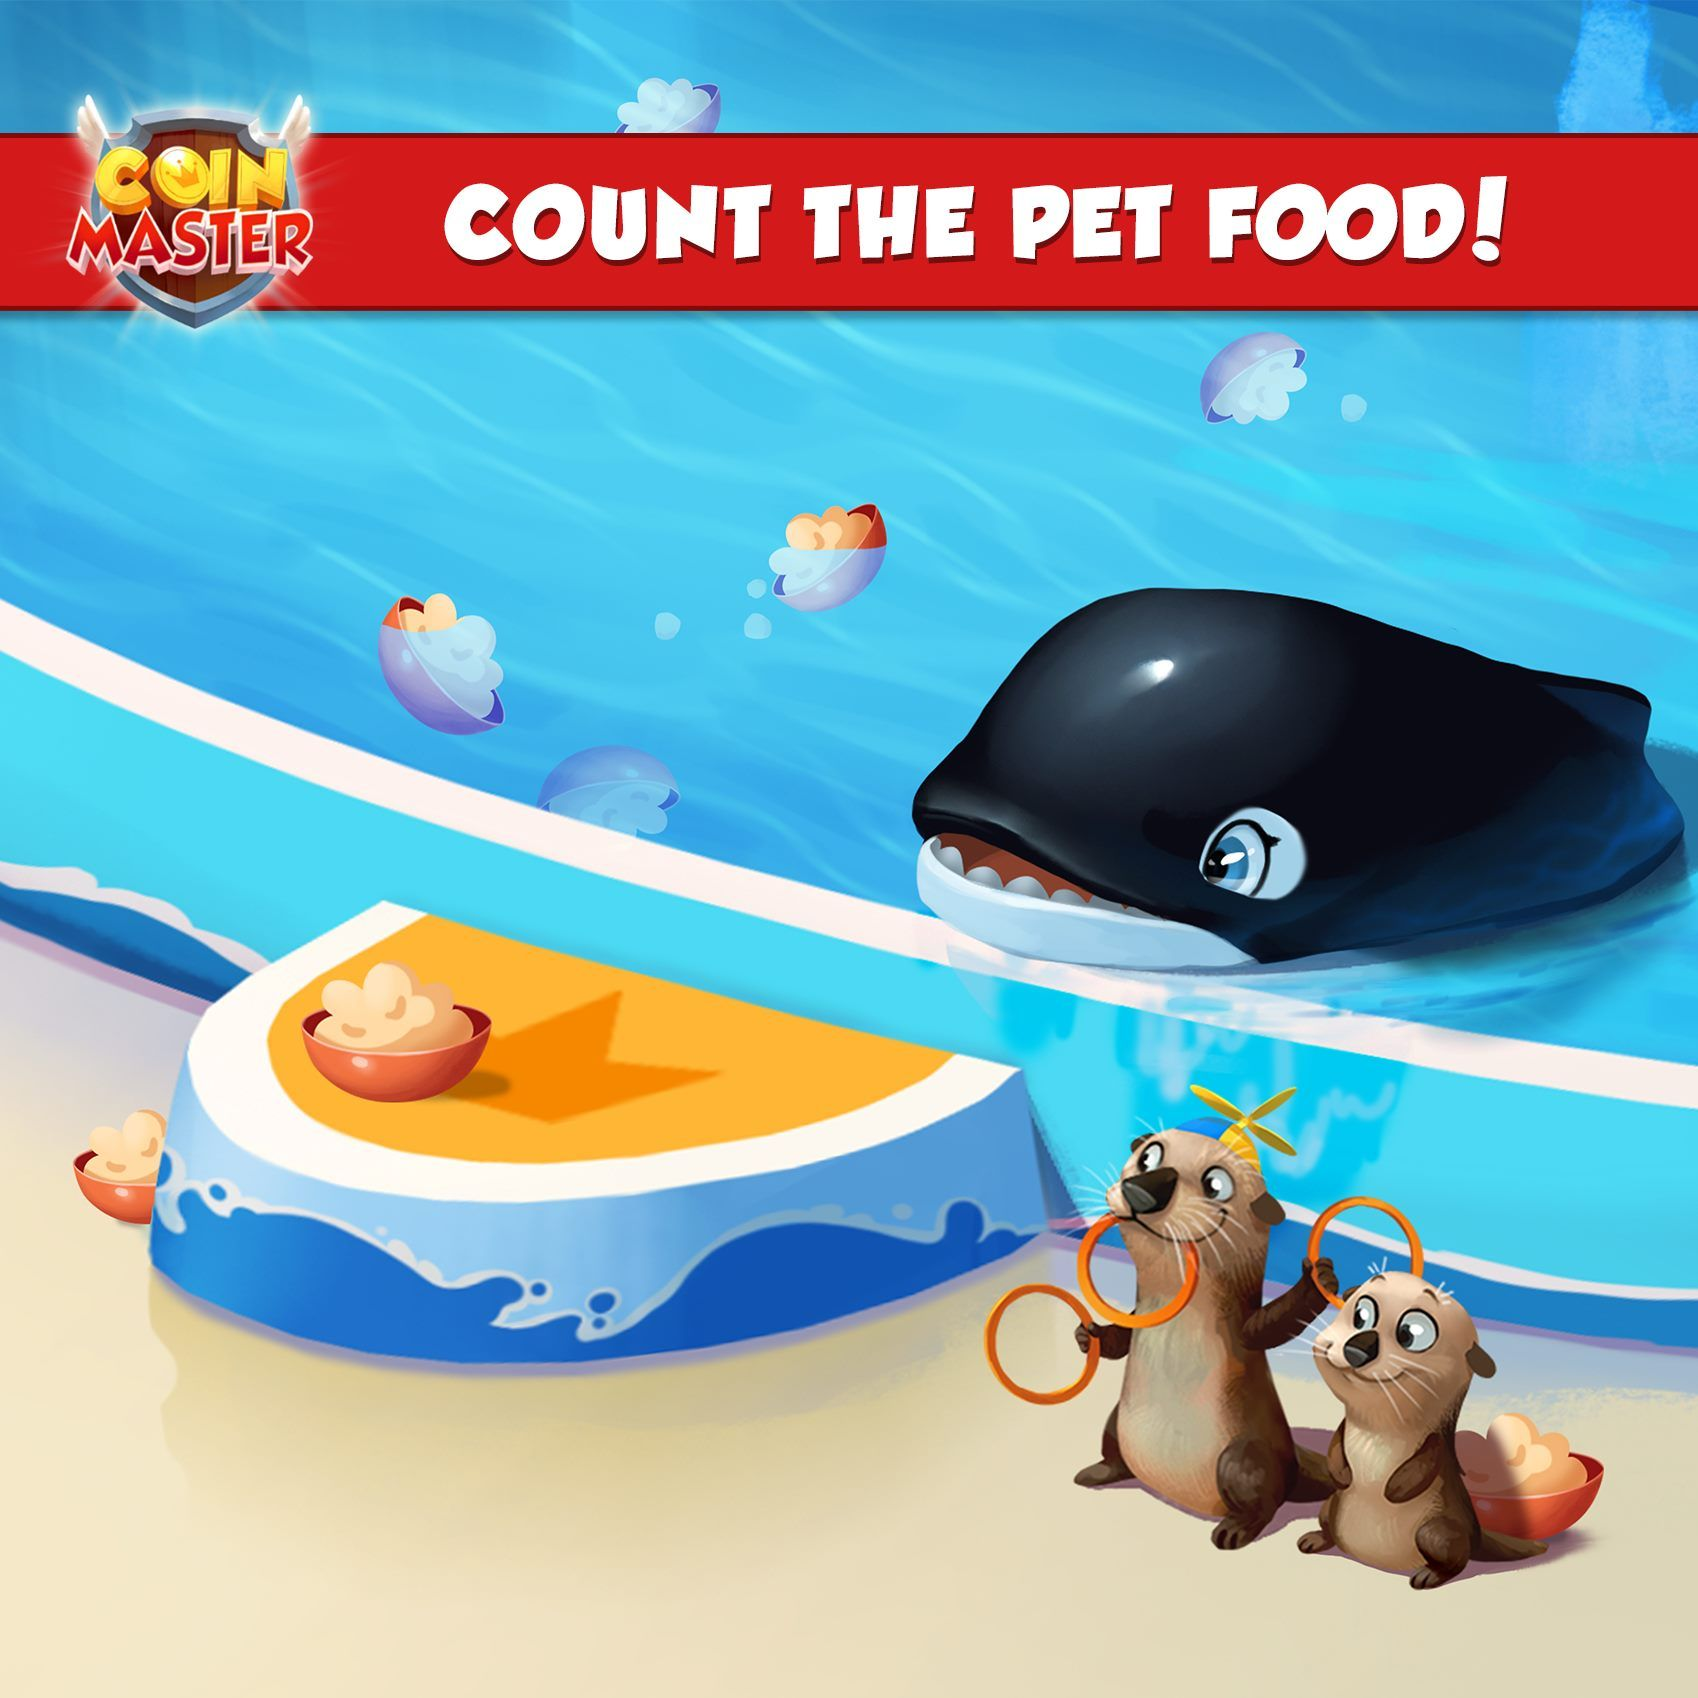 Coin master ready for a challenge count all the pet food